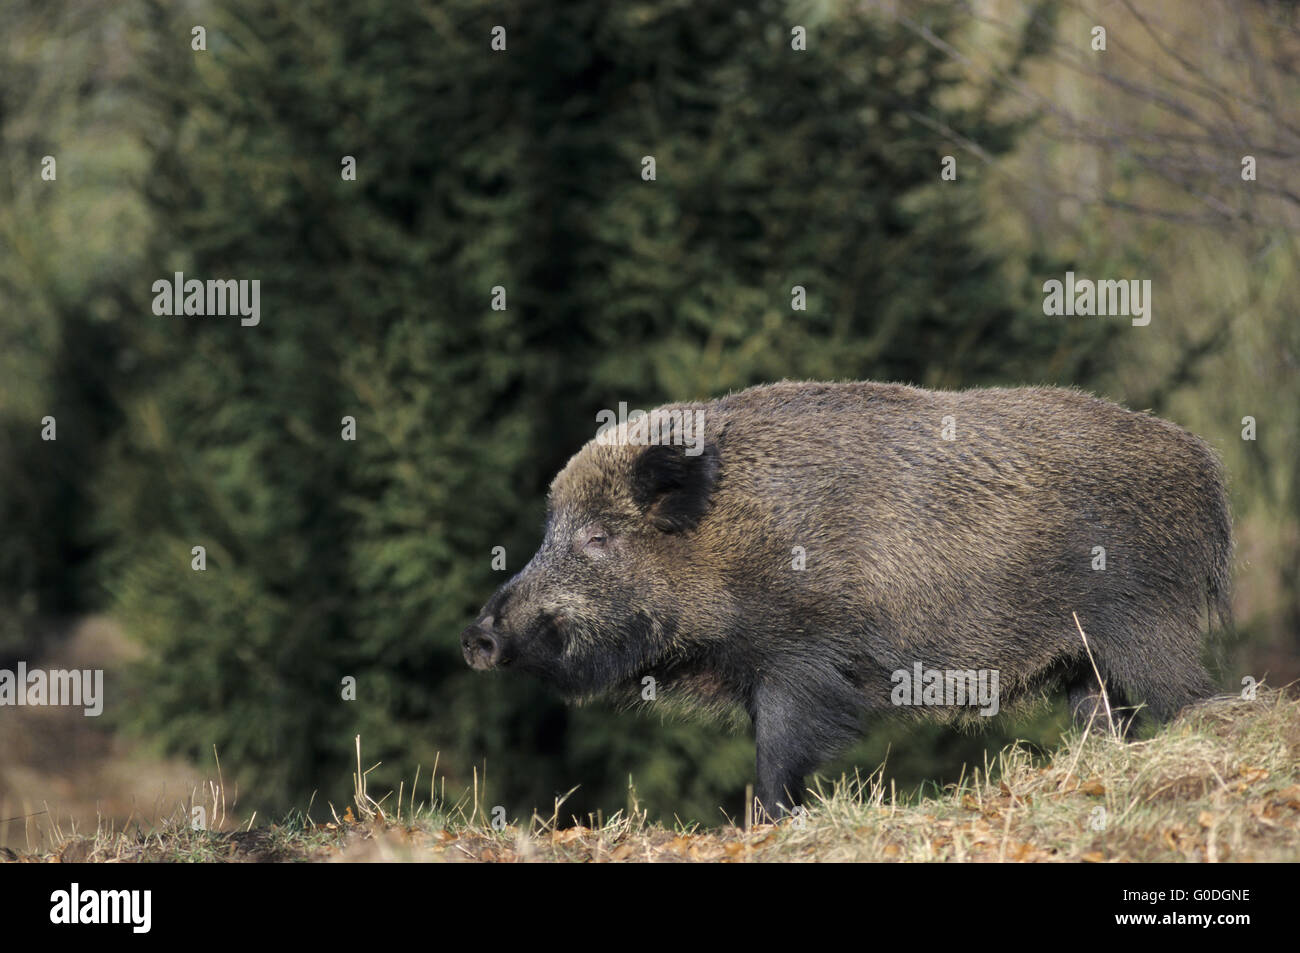 Wild Boar sow searches food at forest edge - Stock Image